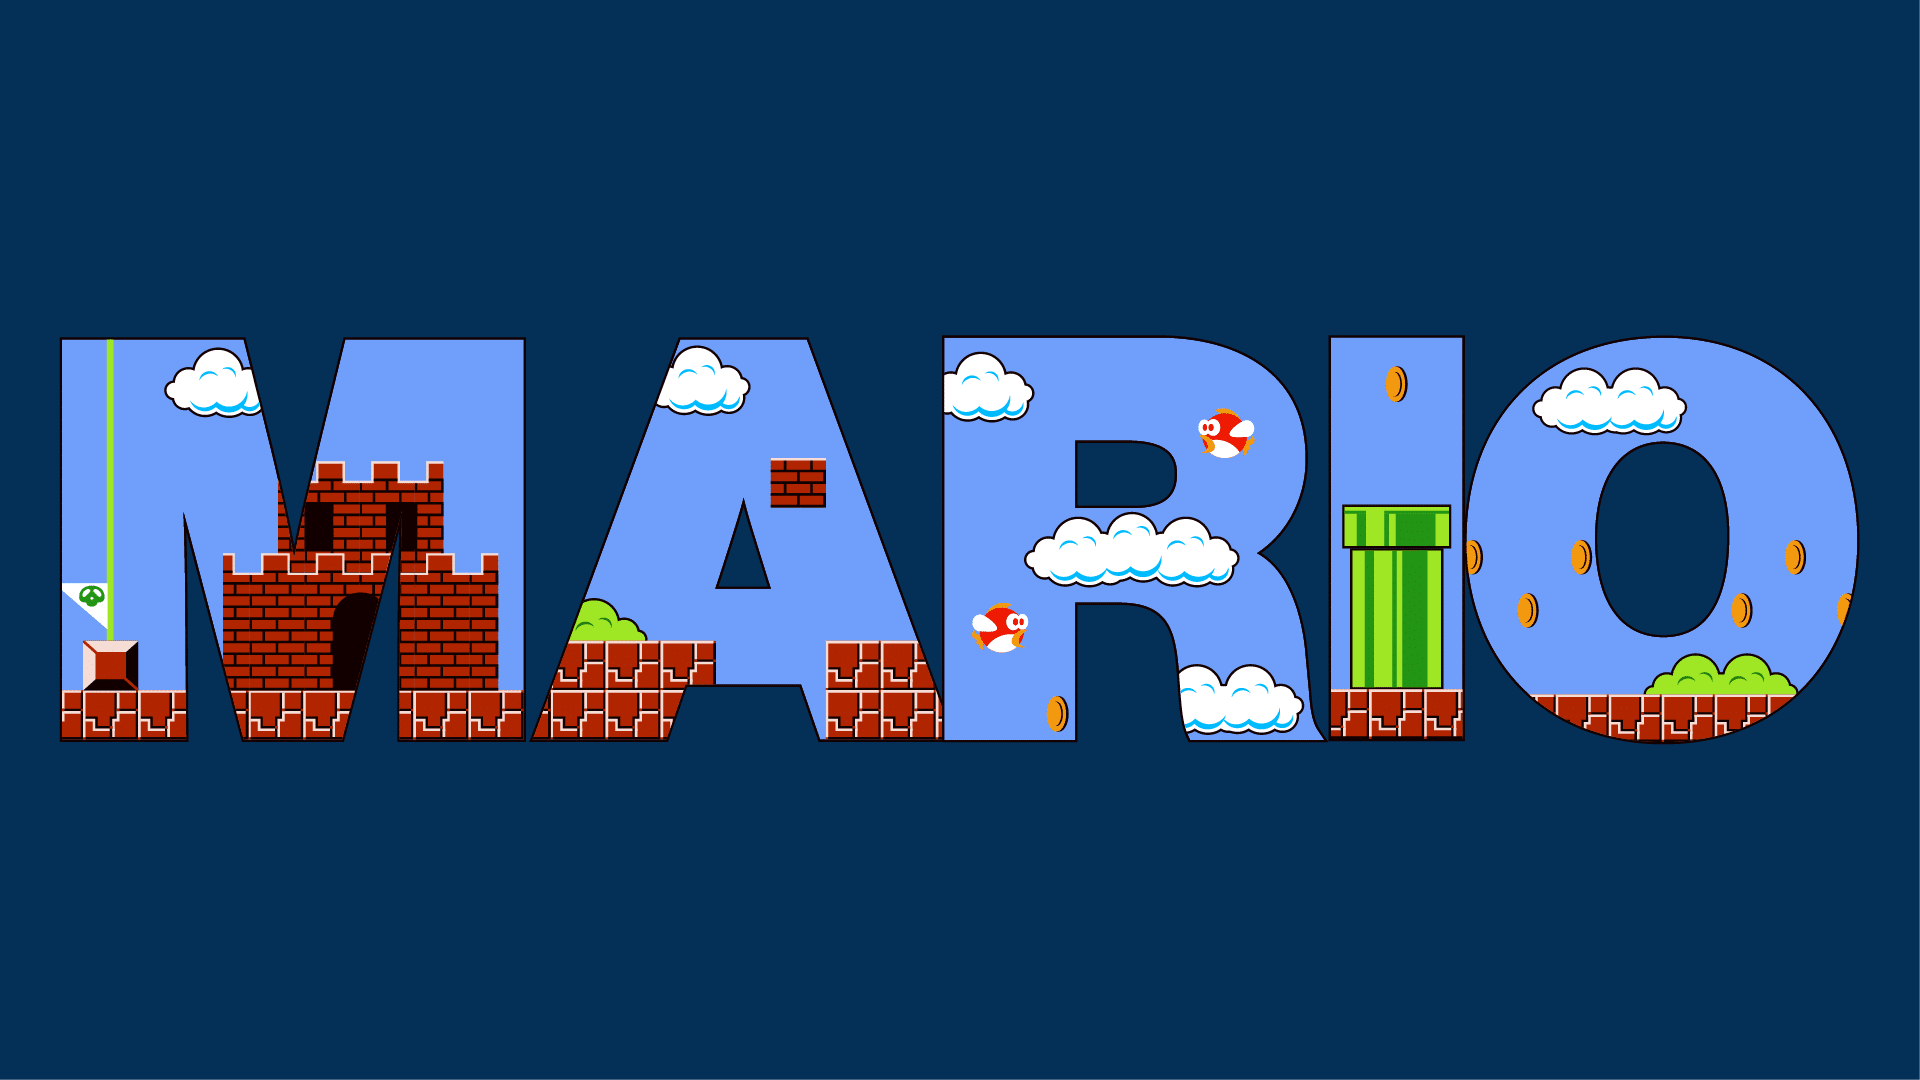 Using Reinforcement Learning To Play Super Mario Bros On Nes